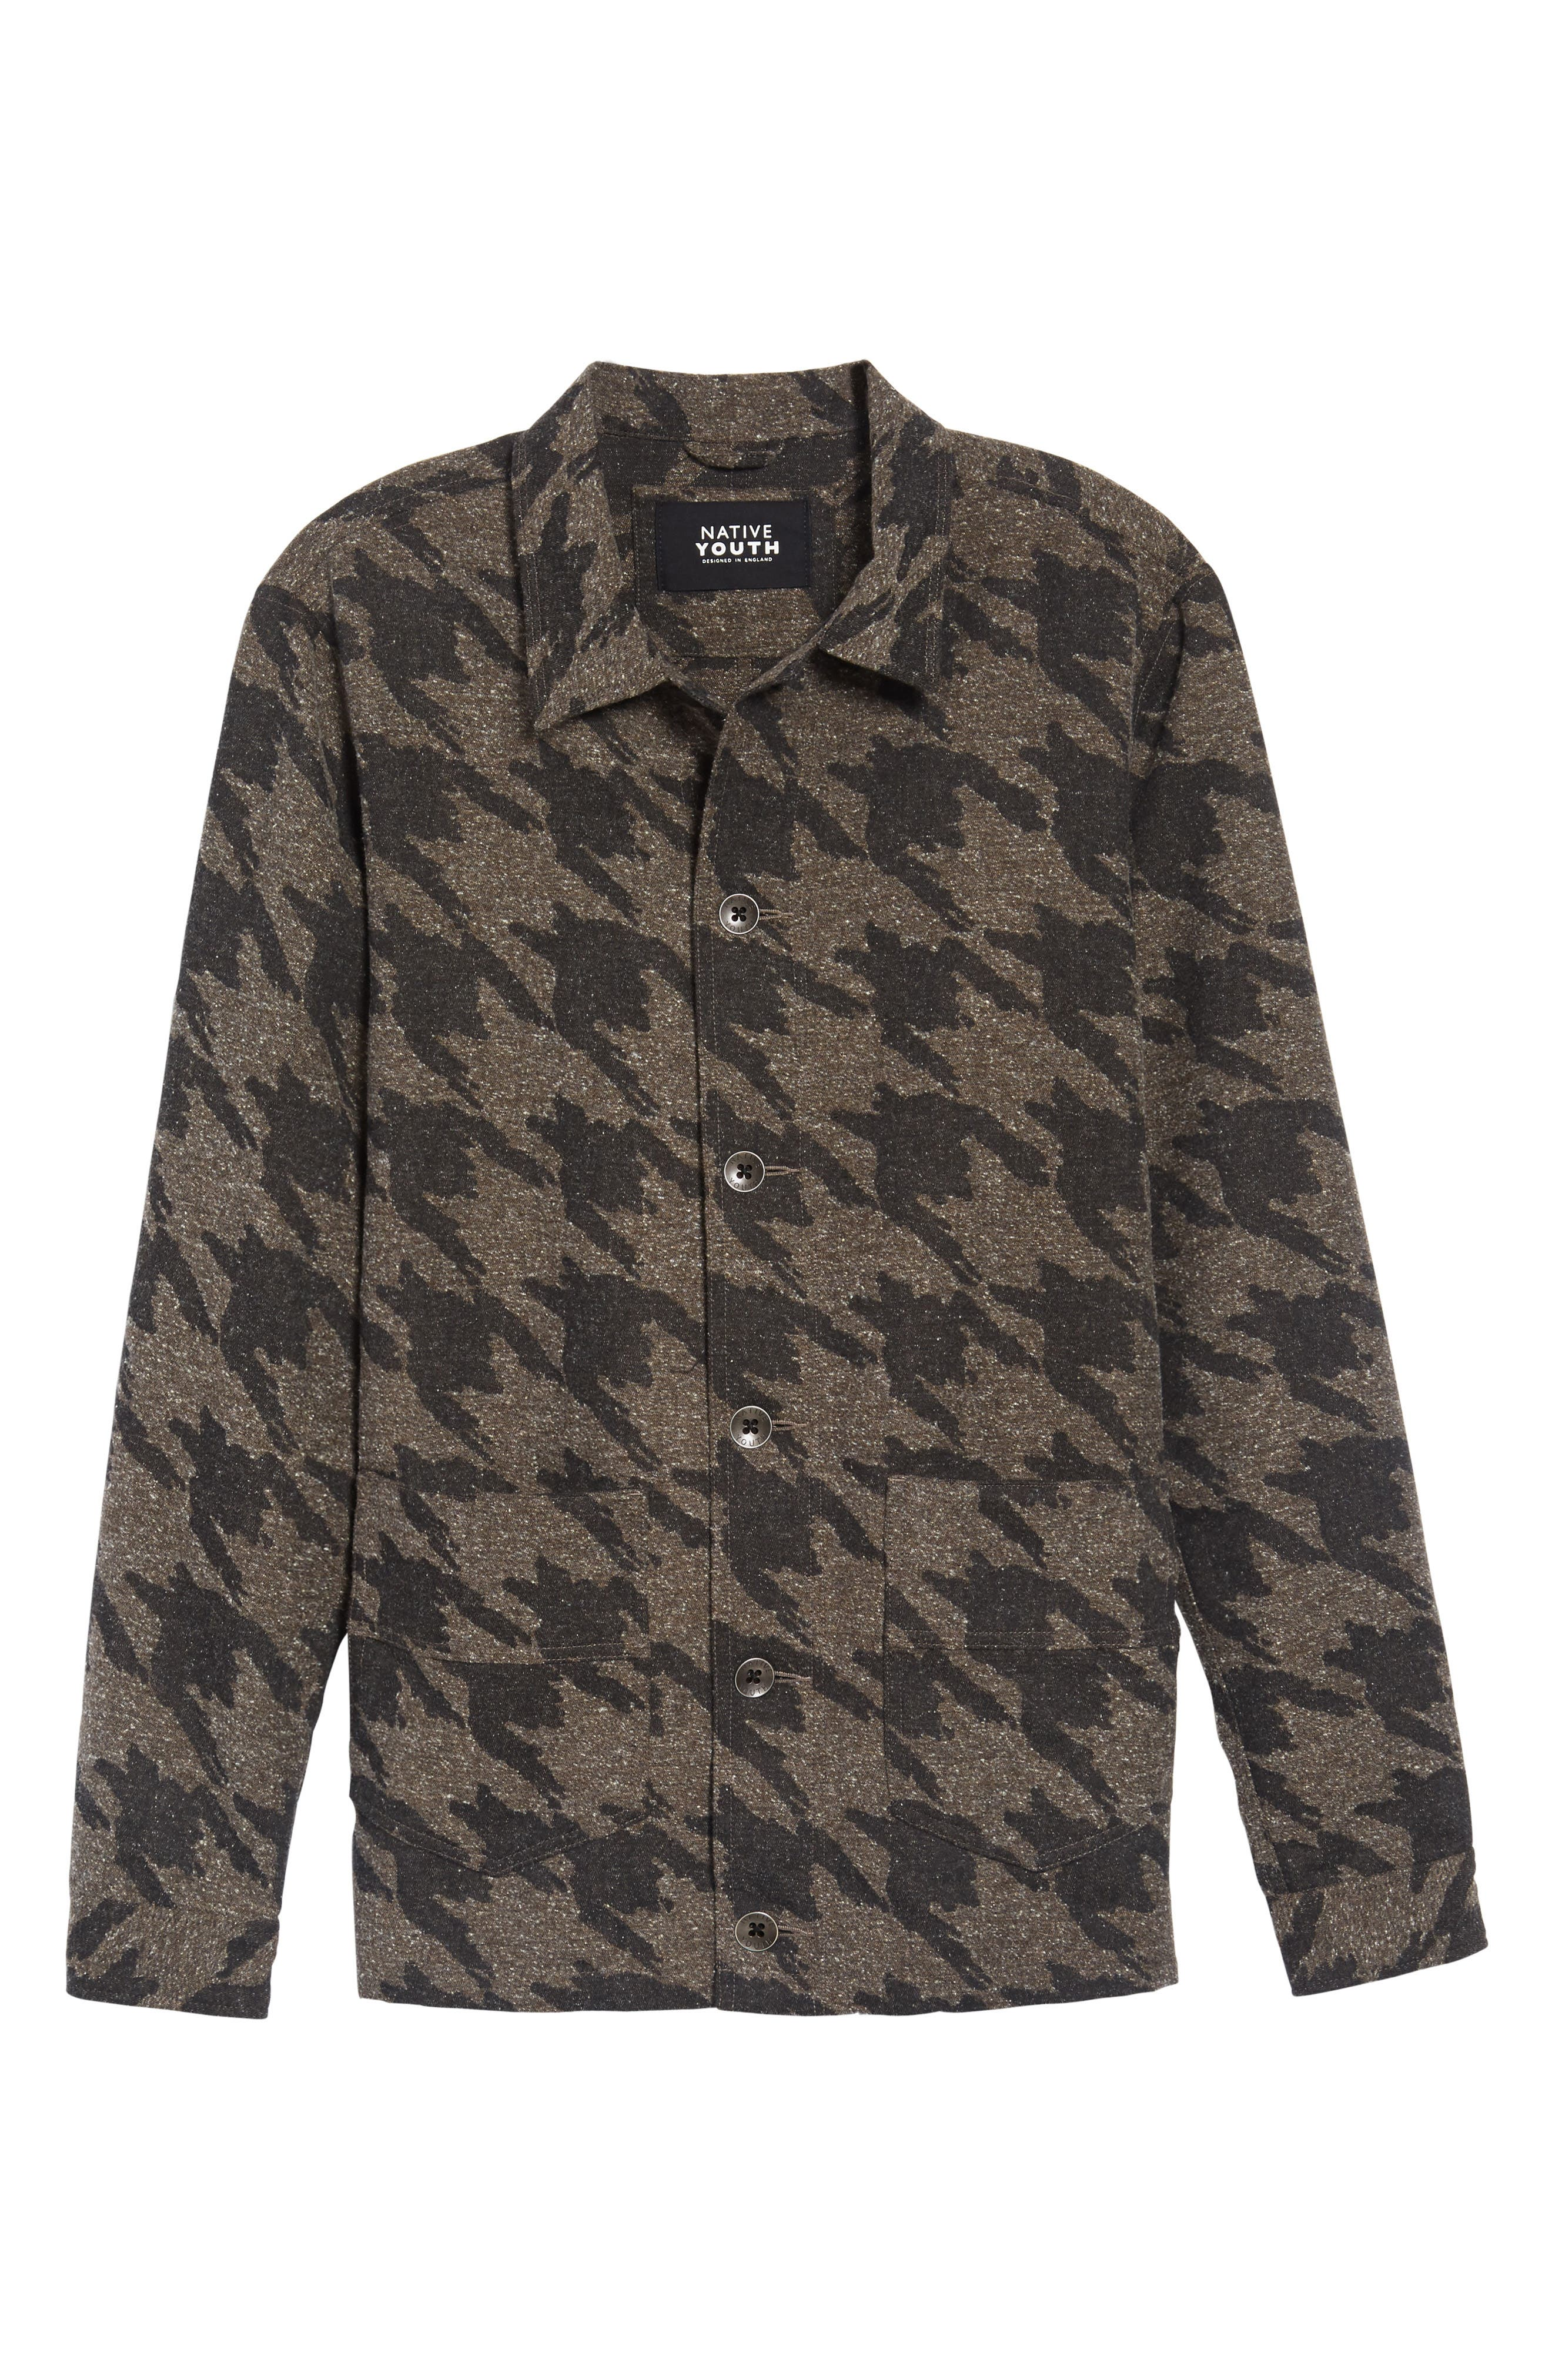 Lynx Shirt Jacket,                             Alternate thumbnail 6, color,                             Charcoal/ Brown